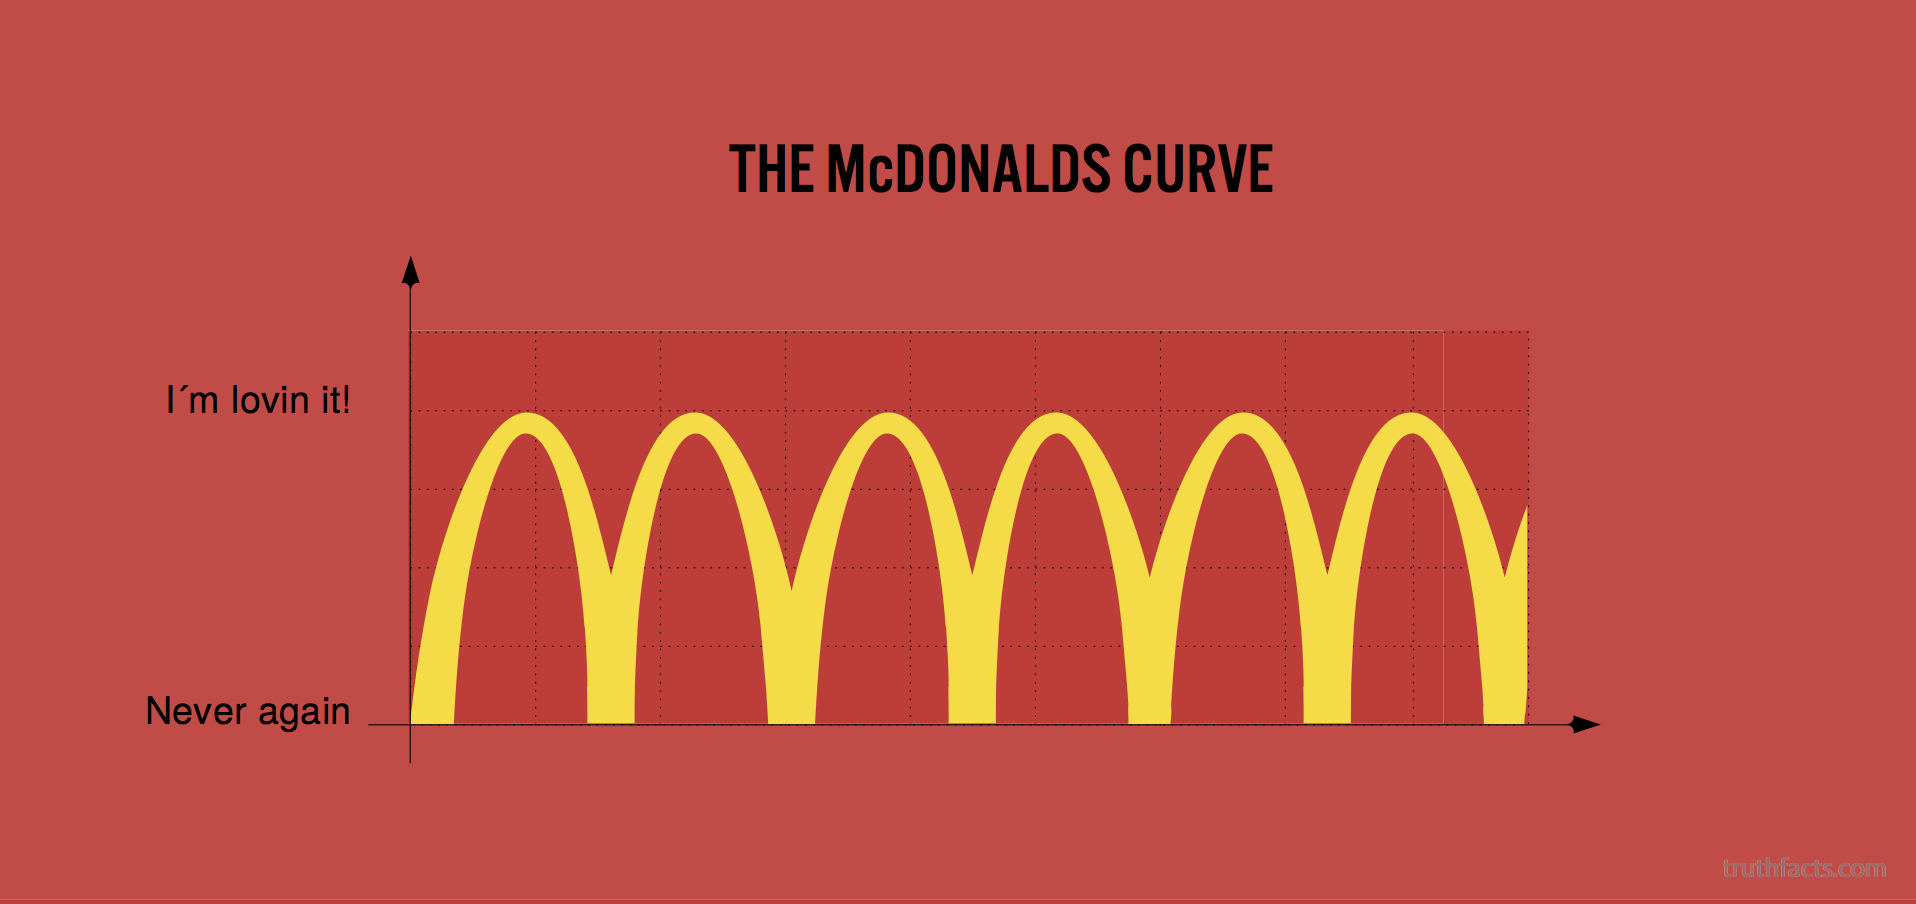 The McDonalds curve